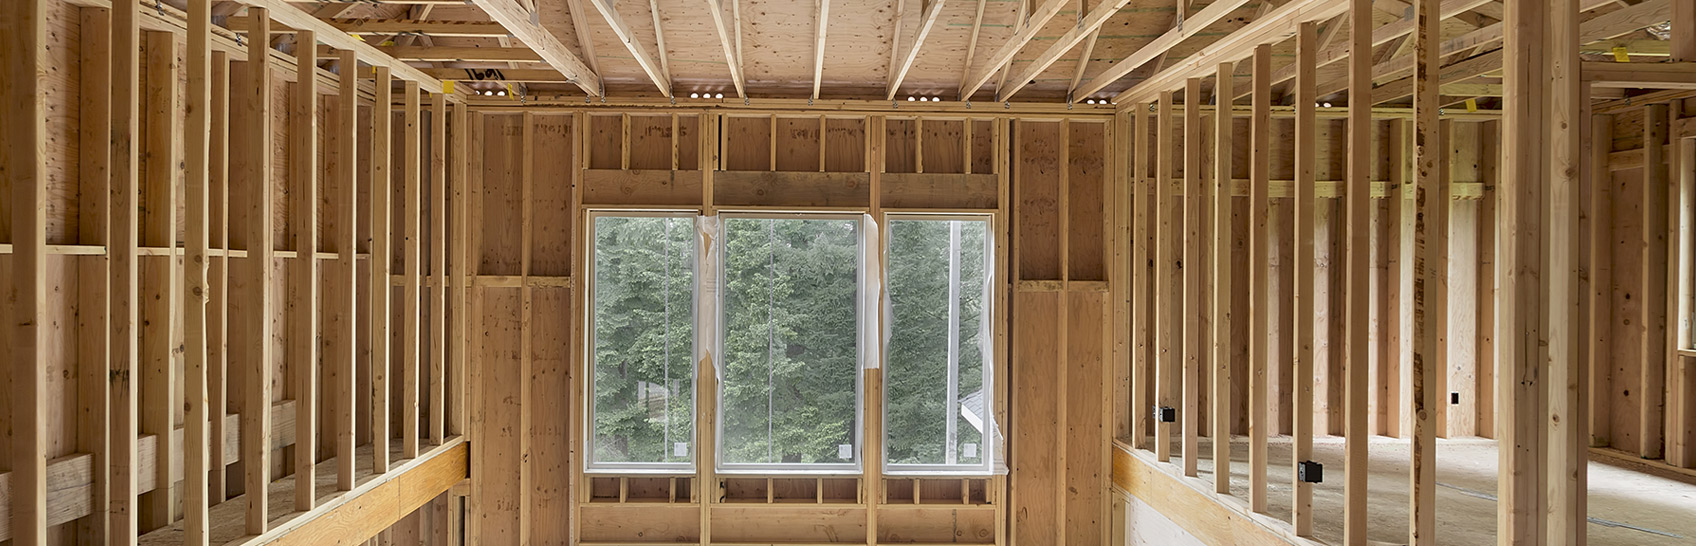 New Construction Homes for Sale in Vermont